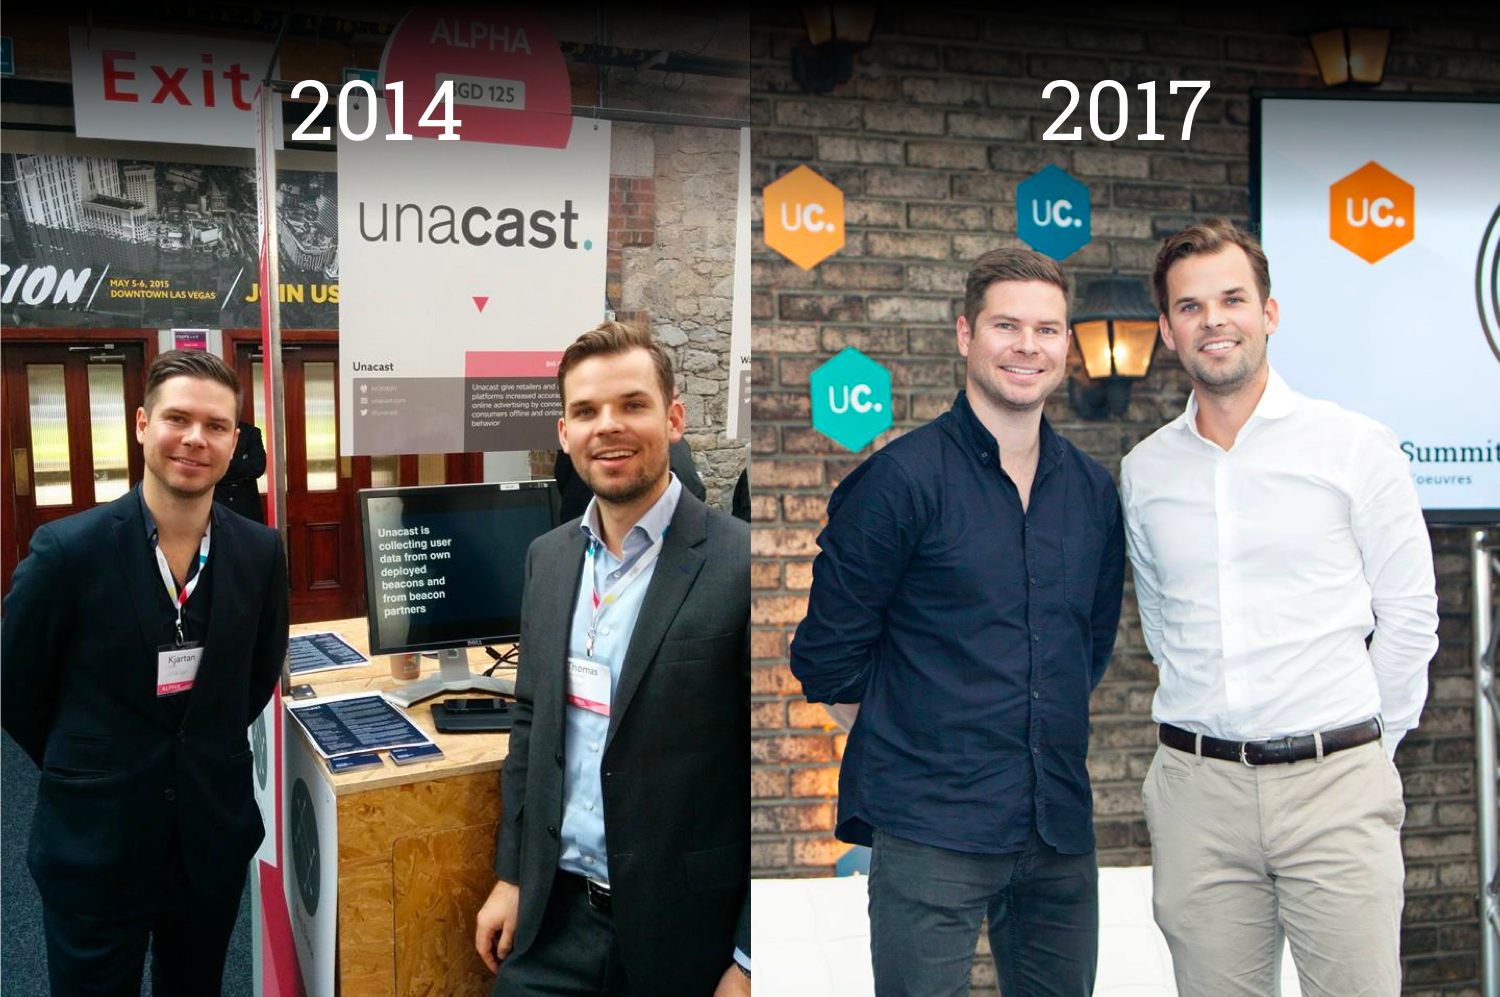 ‍Unacast Co-Founders Kjartan (KJ) Slette and Thomas Walle throughout the years